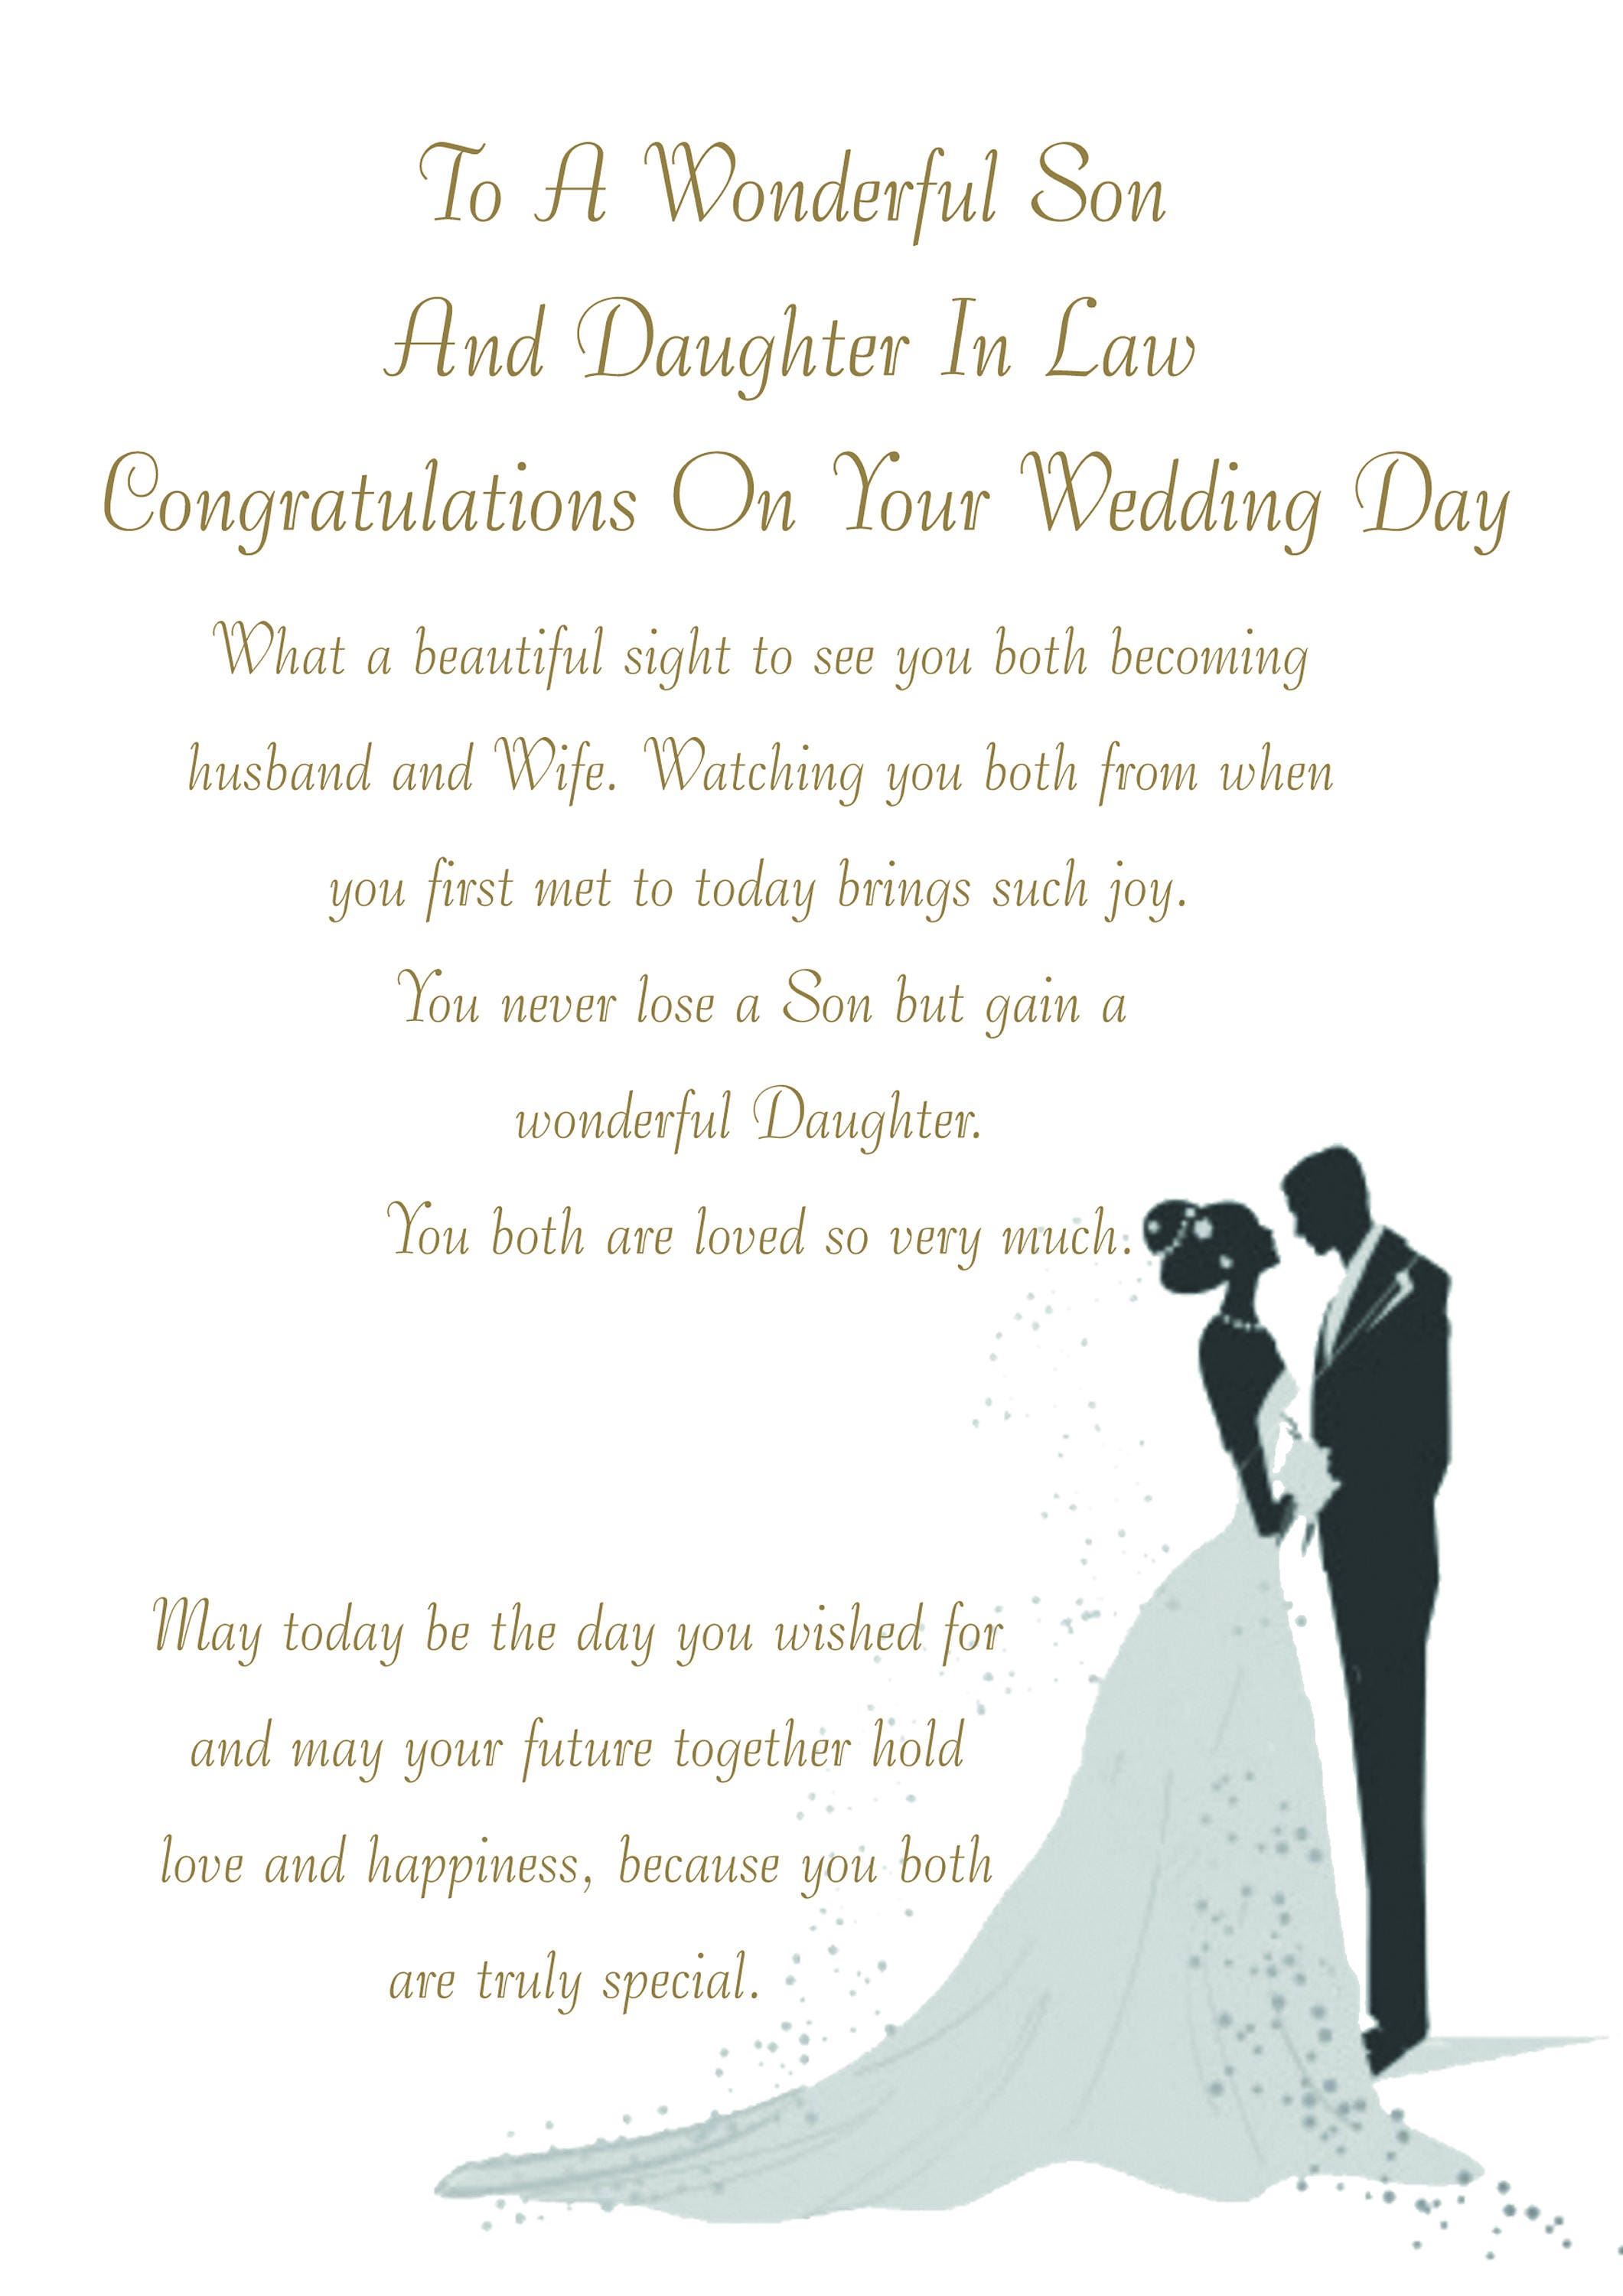 Son Daughter In Law Wedding Card